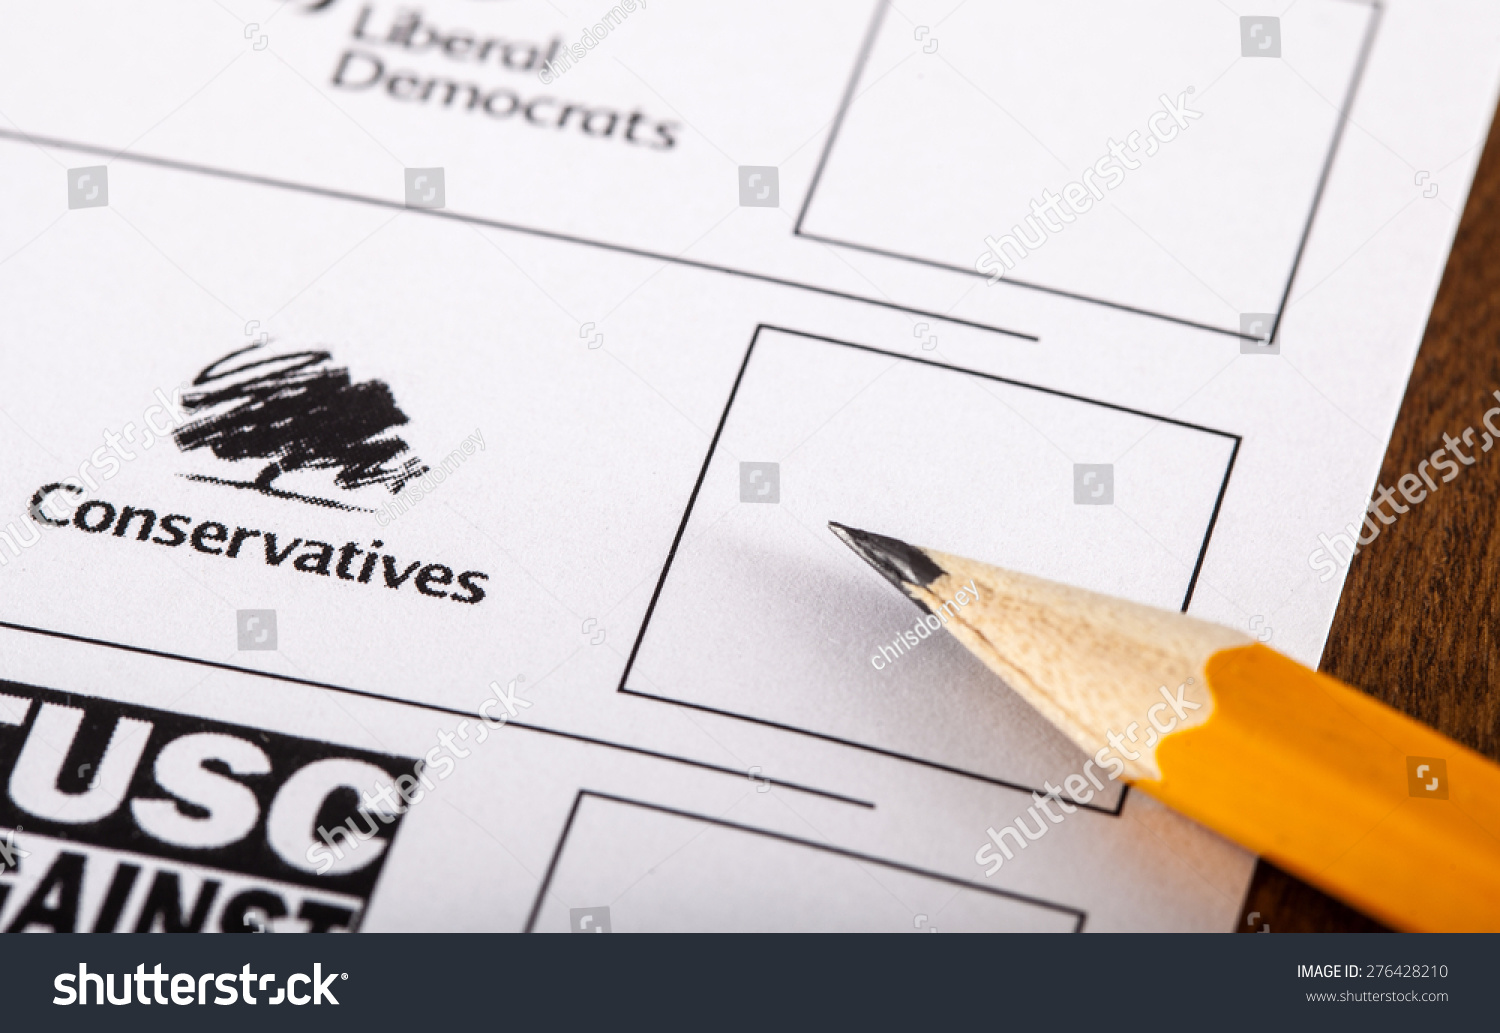 The conservative party essay